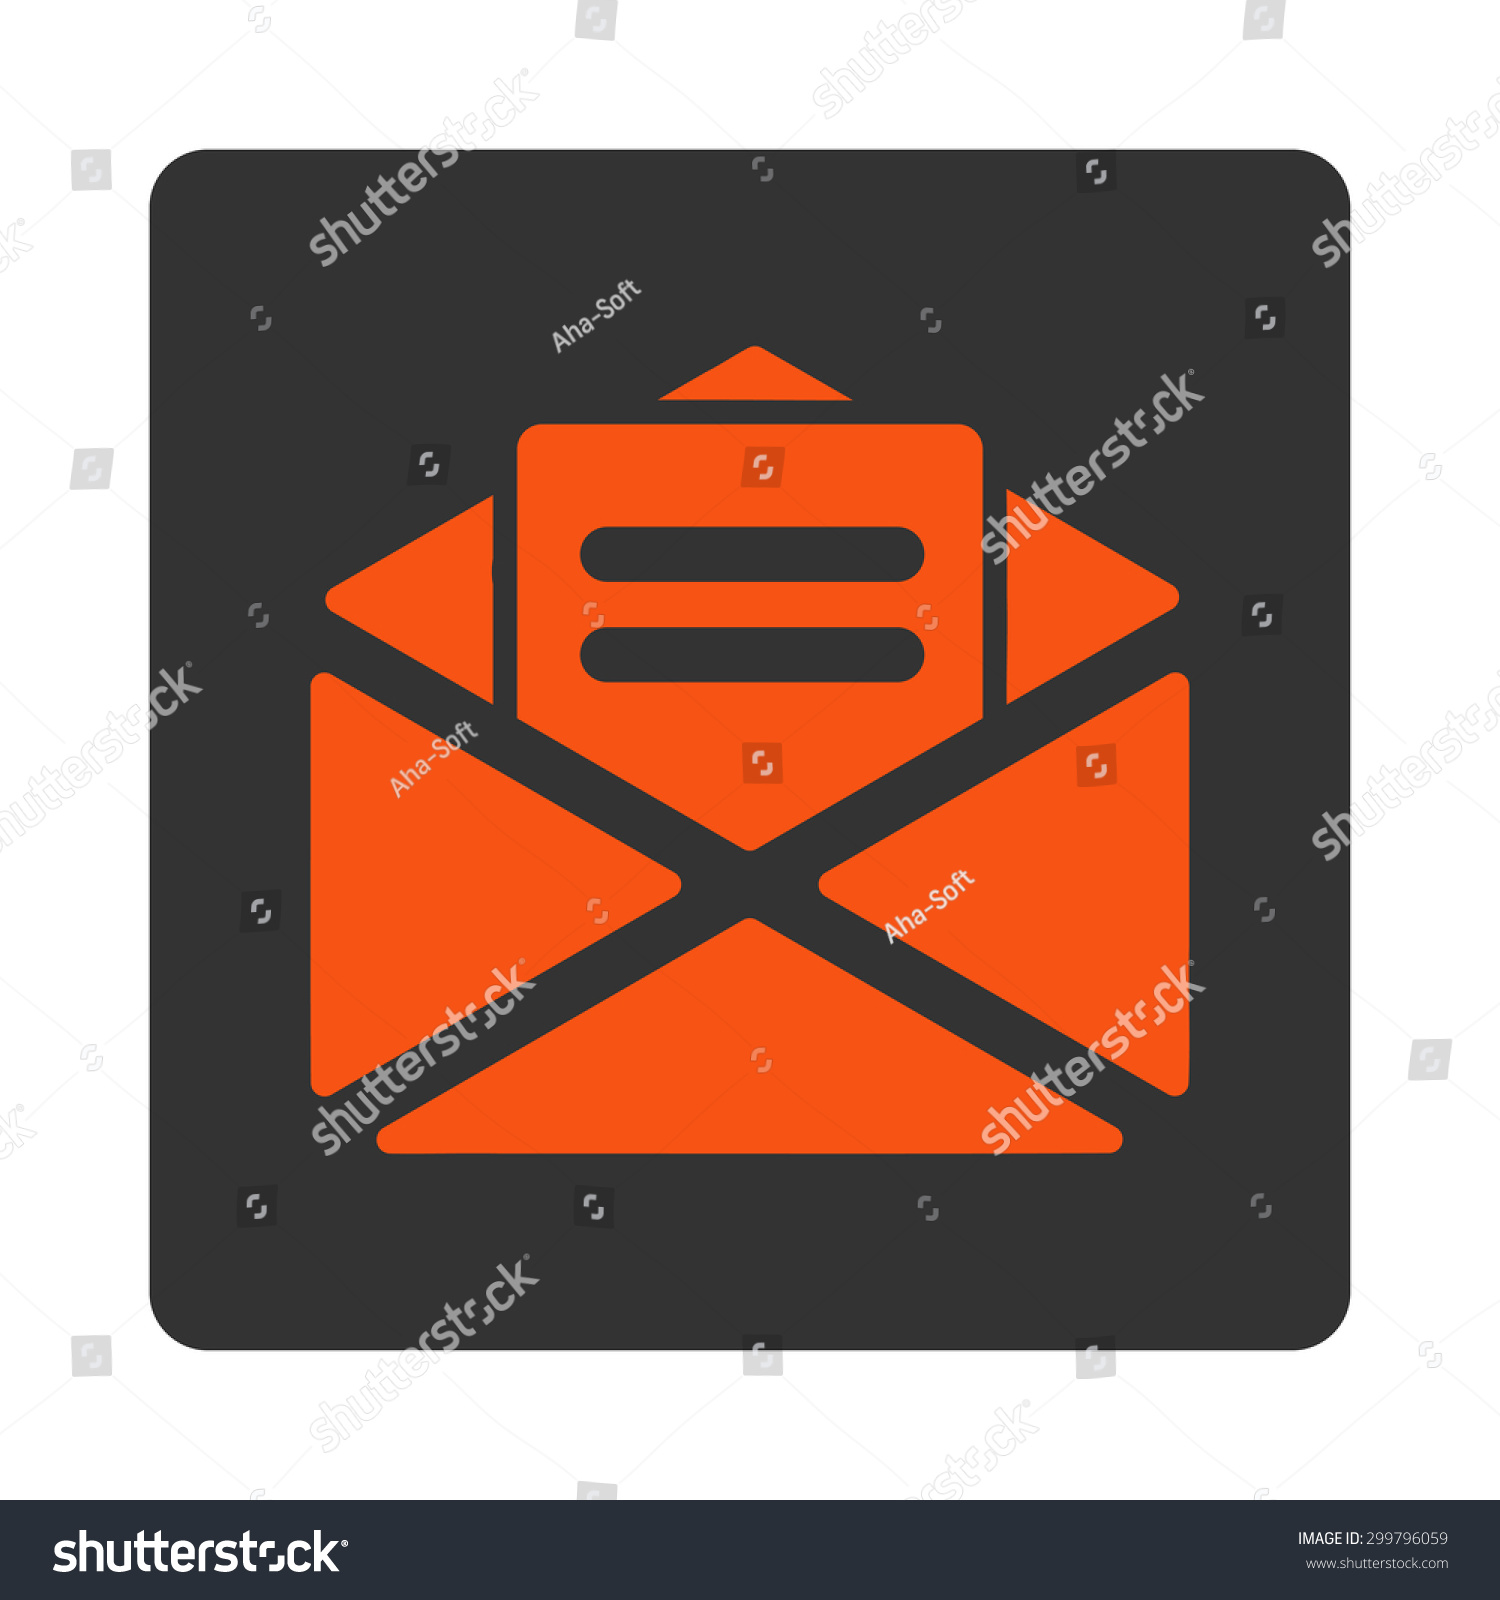 Open Mail Icon Glyph Style Orange Stock Illustration 299796059 ...